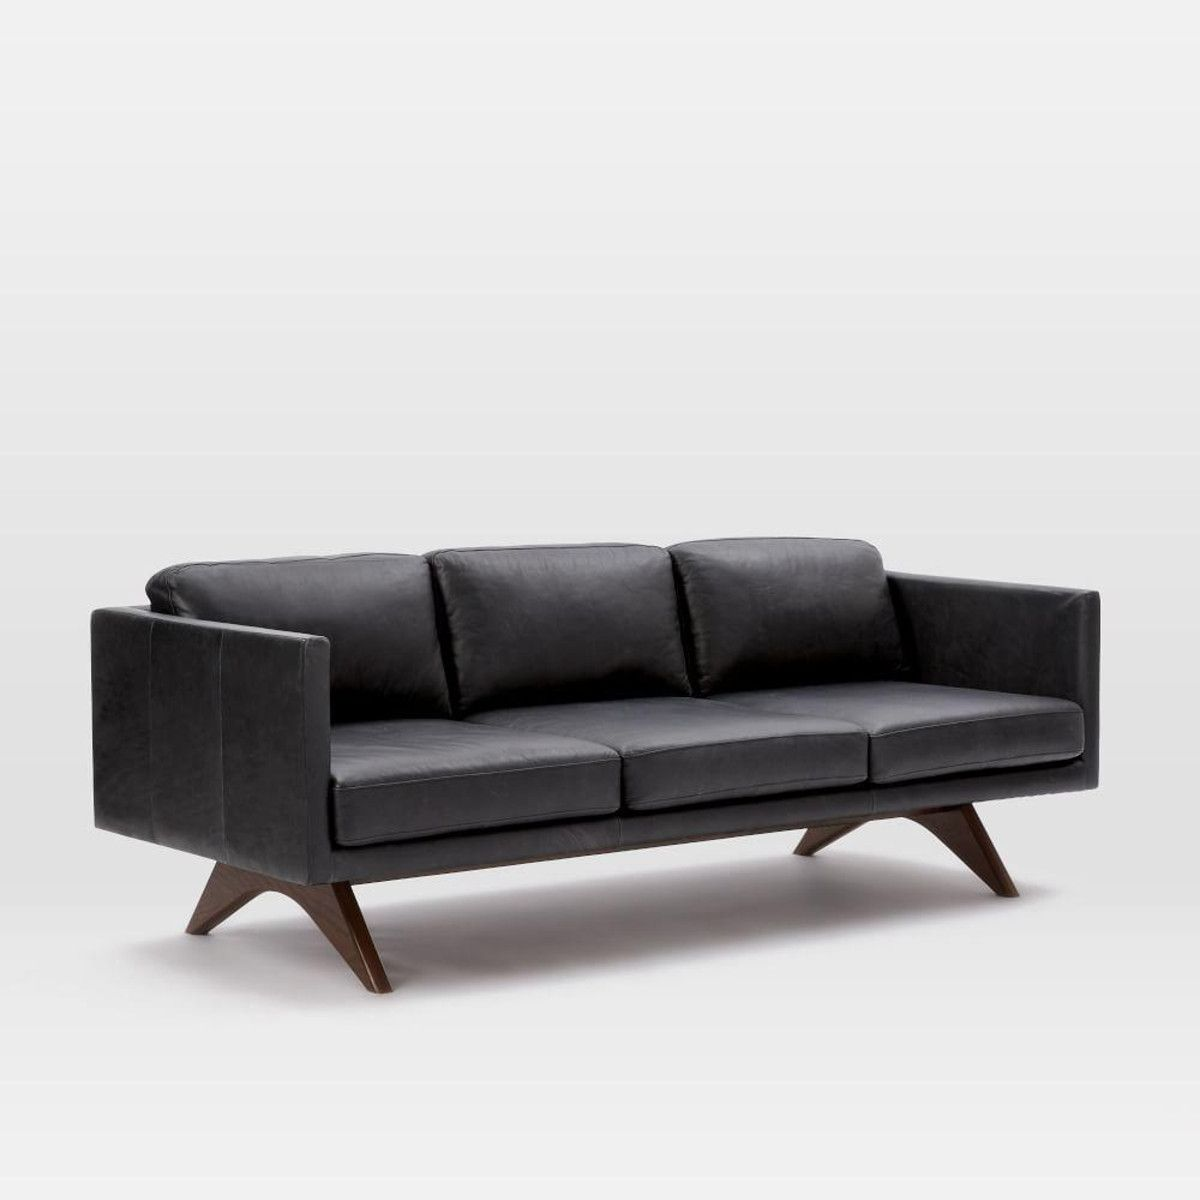 Room Brooklyn Leather Sofa